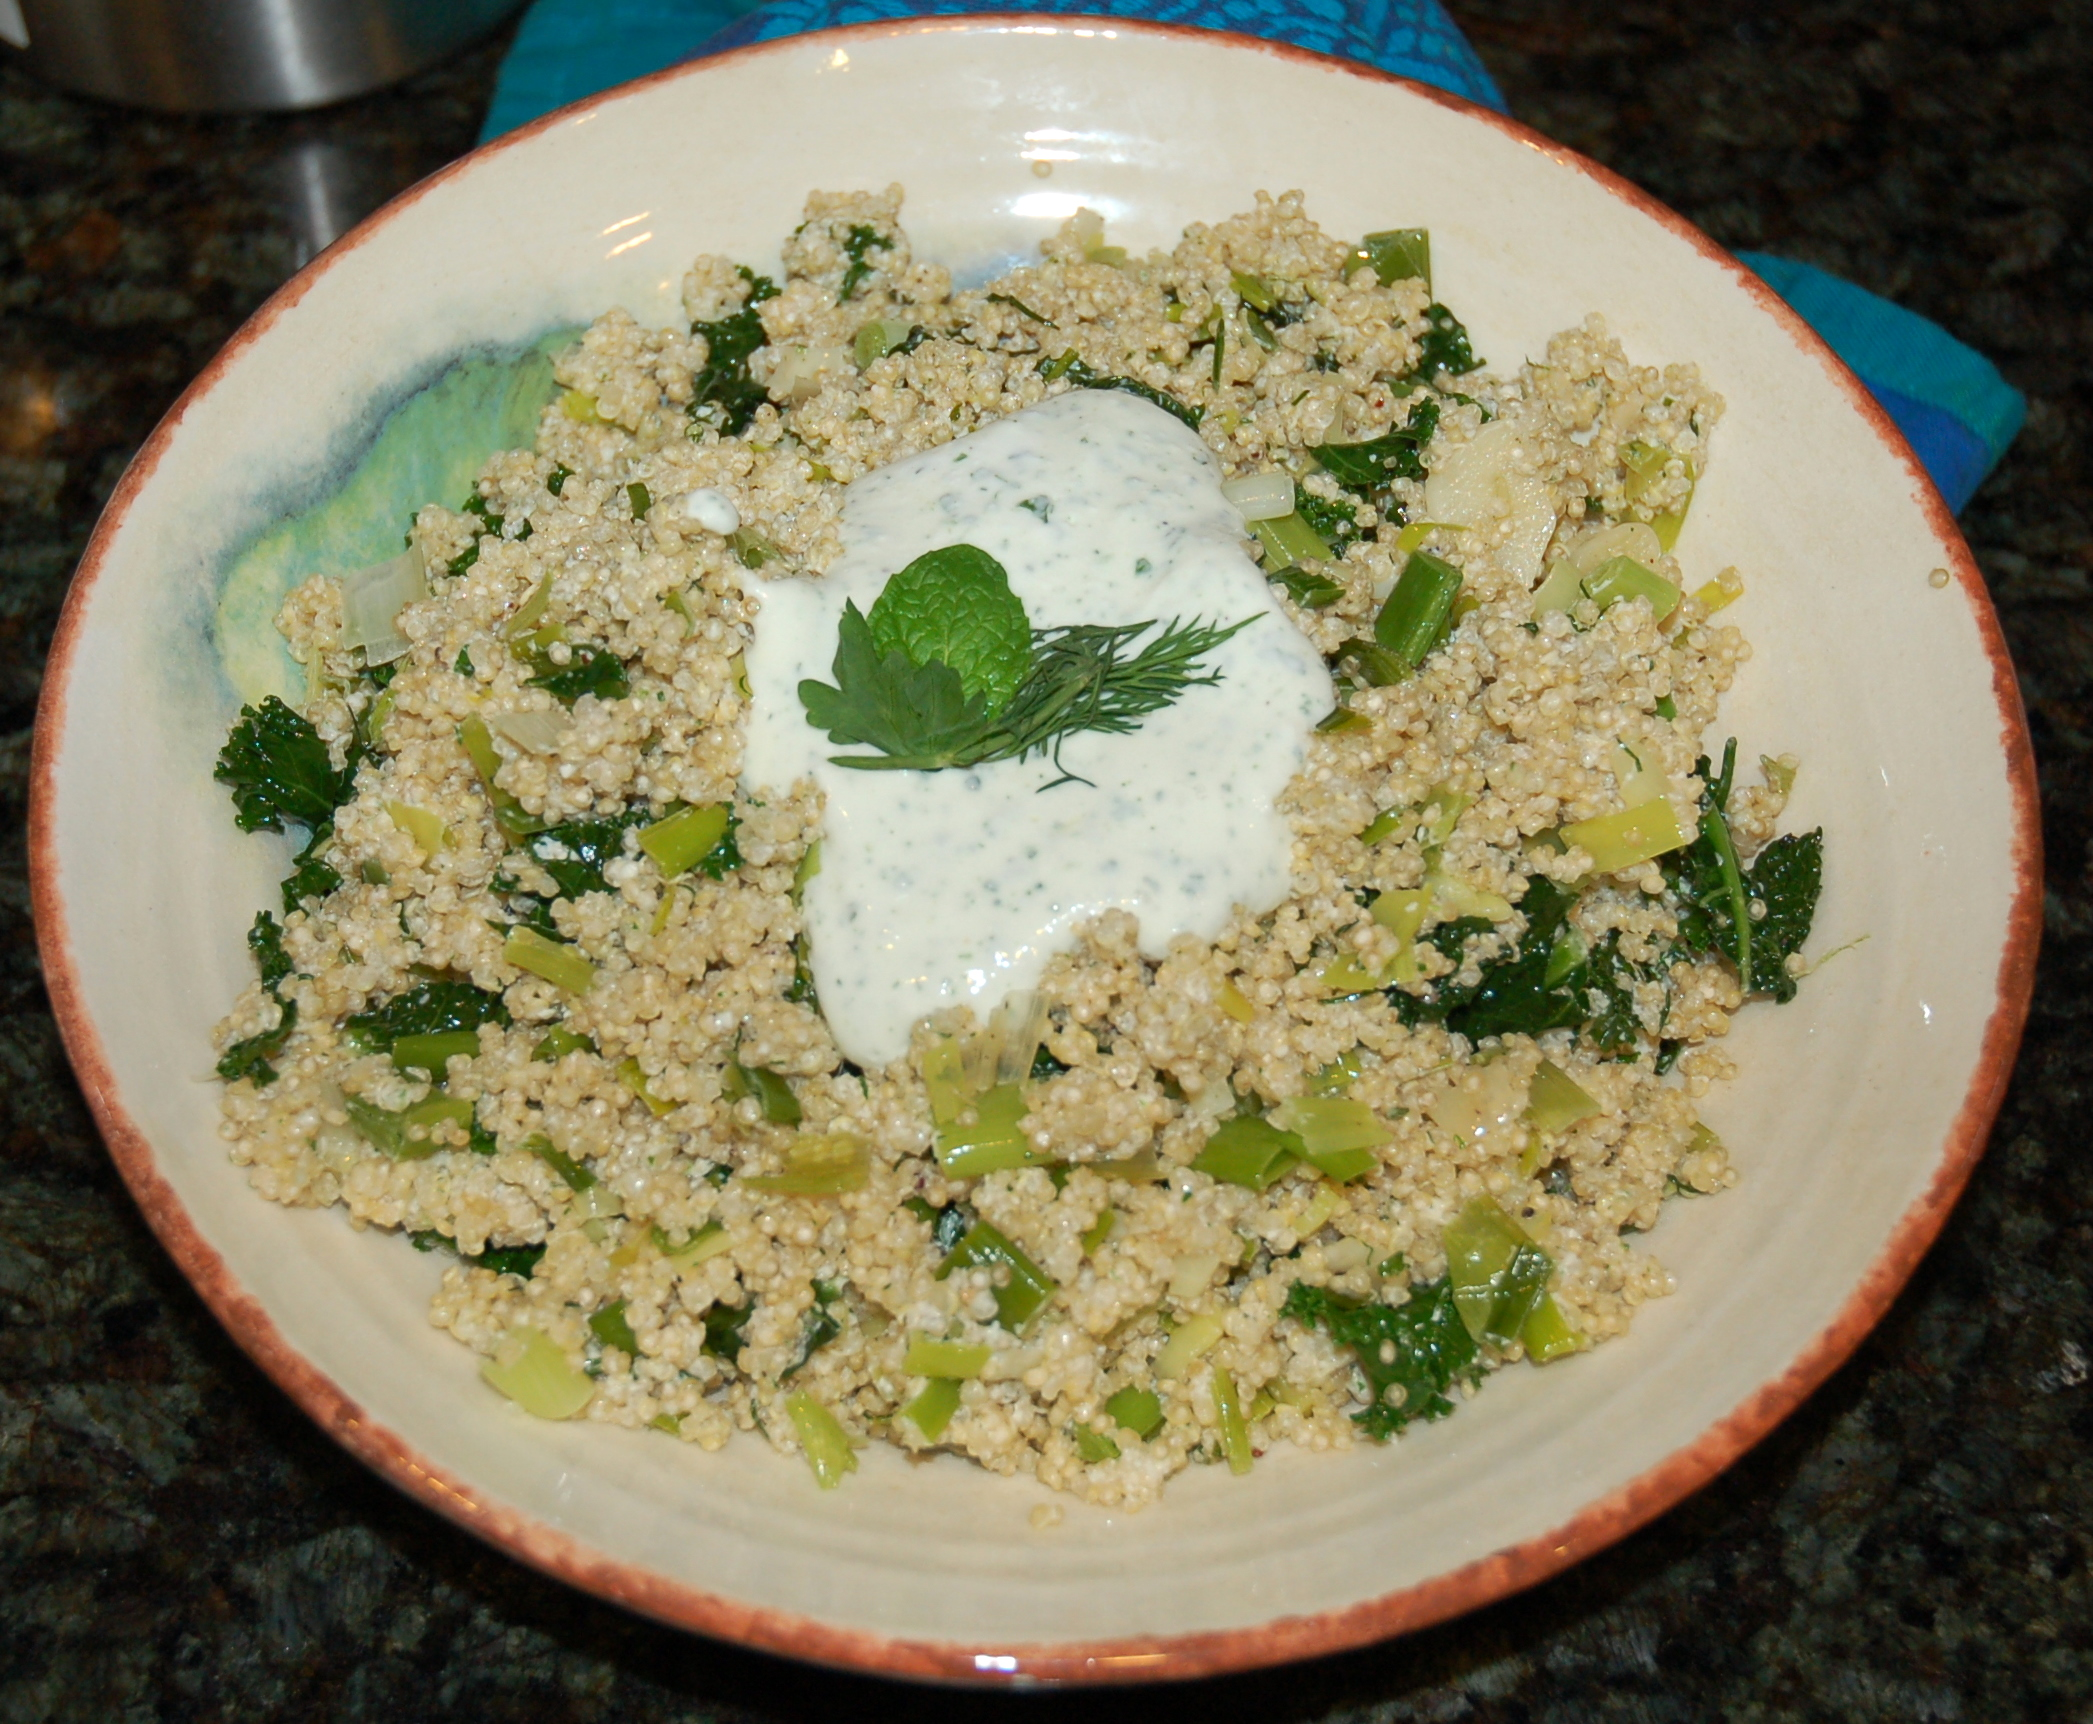 Greened Quinoa with Herbed Feta-Yogurt Dressing